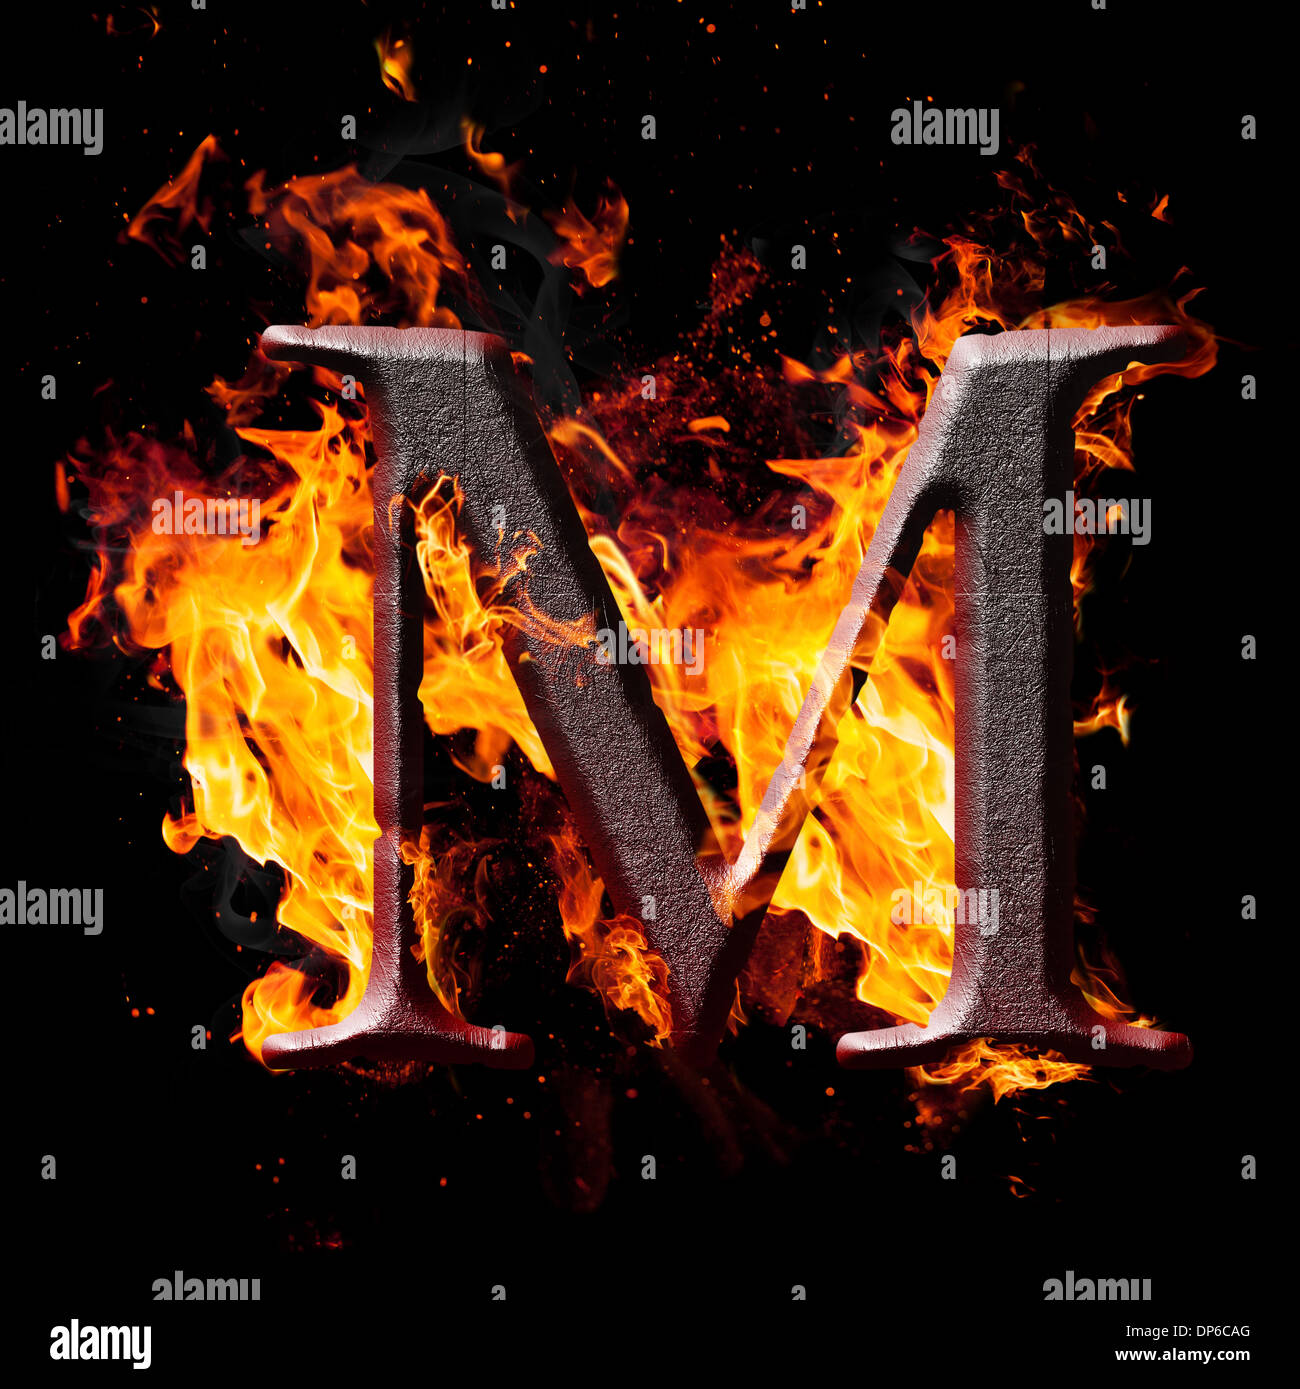 Letters and symbols in fire m stock photo royalty free image letters and symbols in fire m biocorpaavc